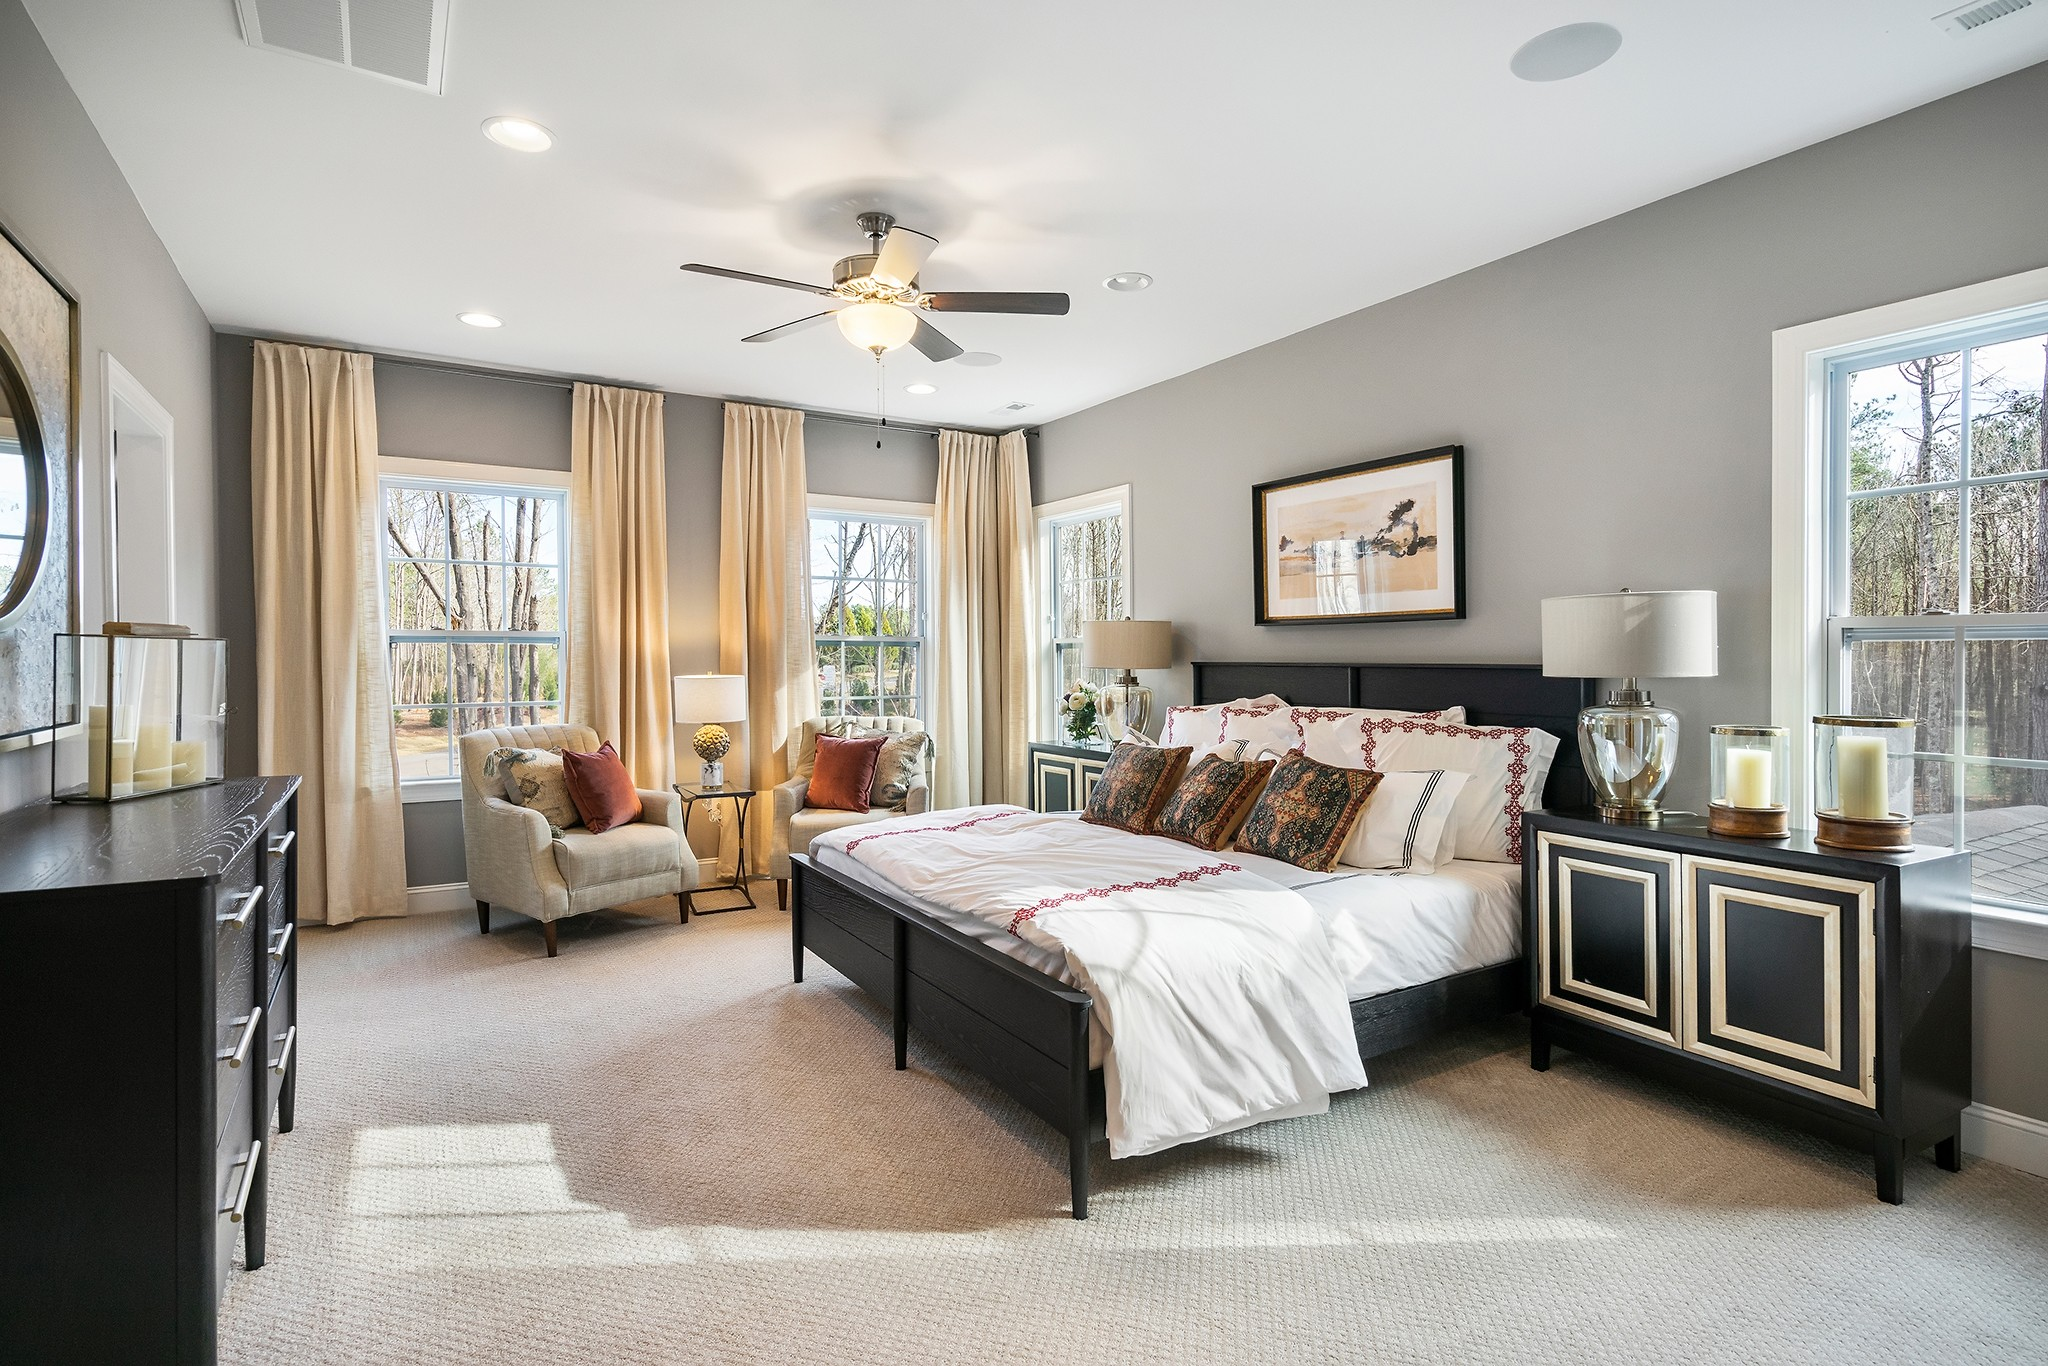 Ballentine Place, The Edenton Model, Royal Oaks a Division of Mattamy Homes, Spacious Master Suite